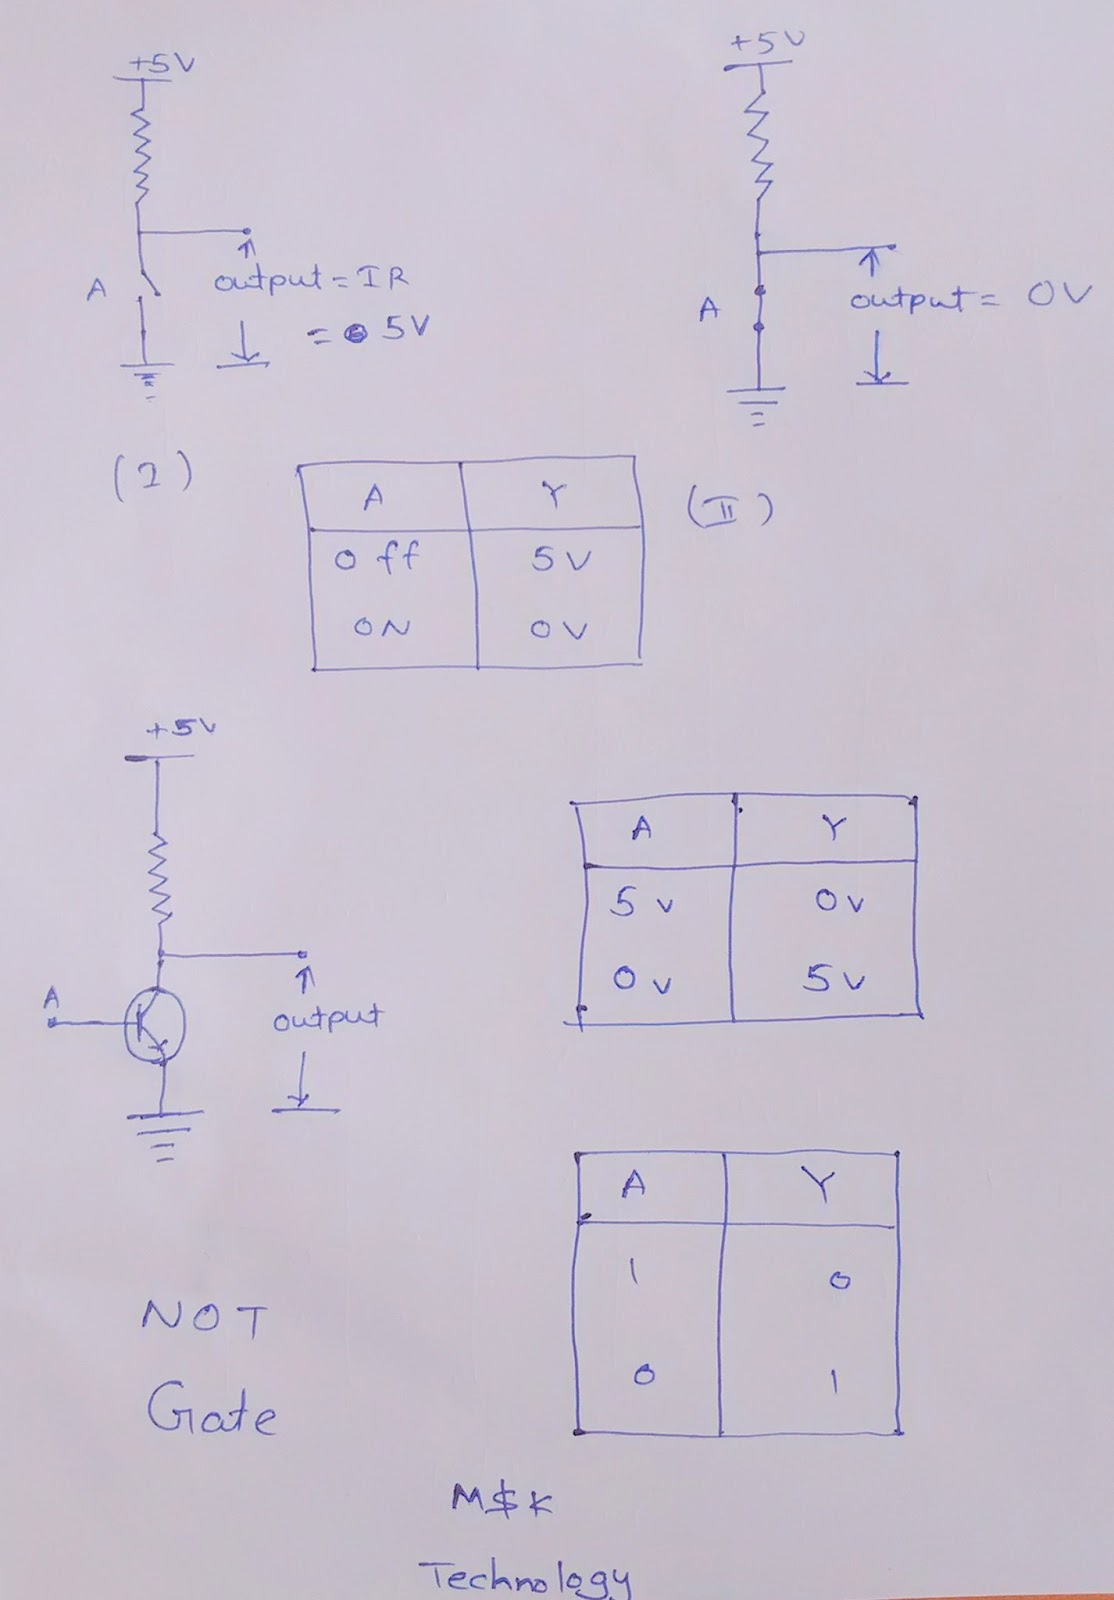 hight resolution of similarly not gate is also made from transistors fig 3 shows the circuit for a not gate using a switch